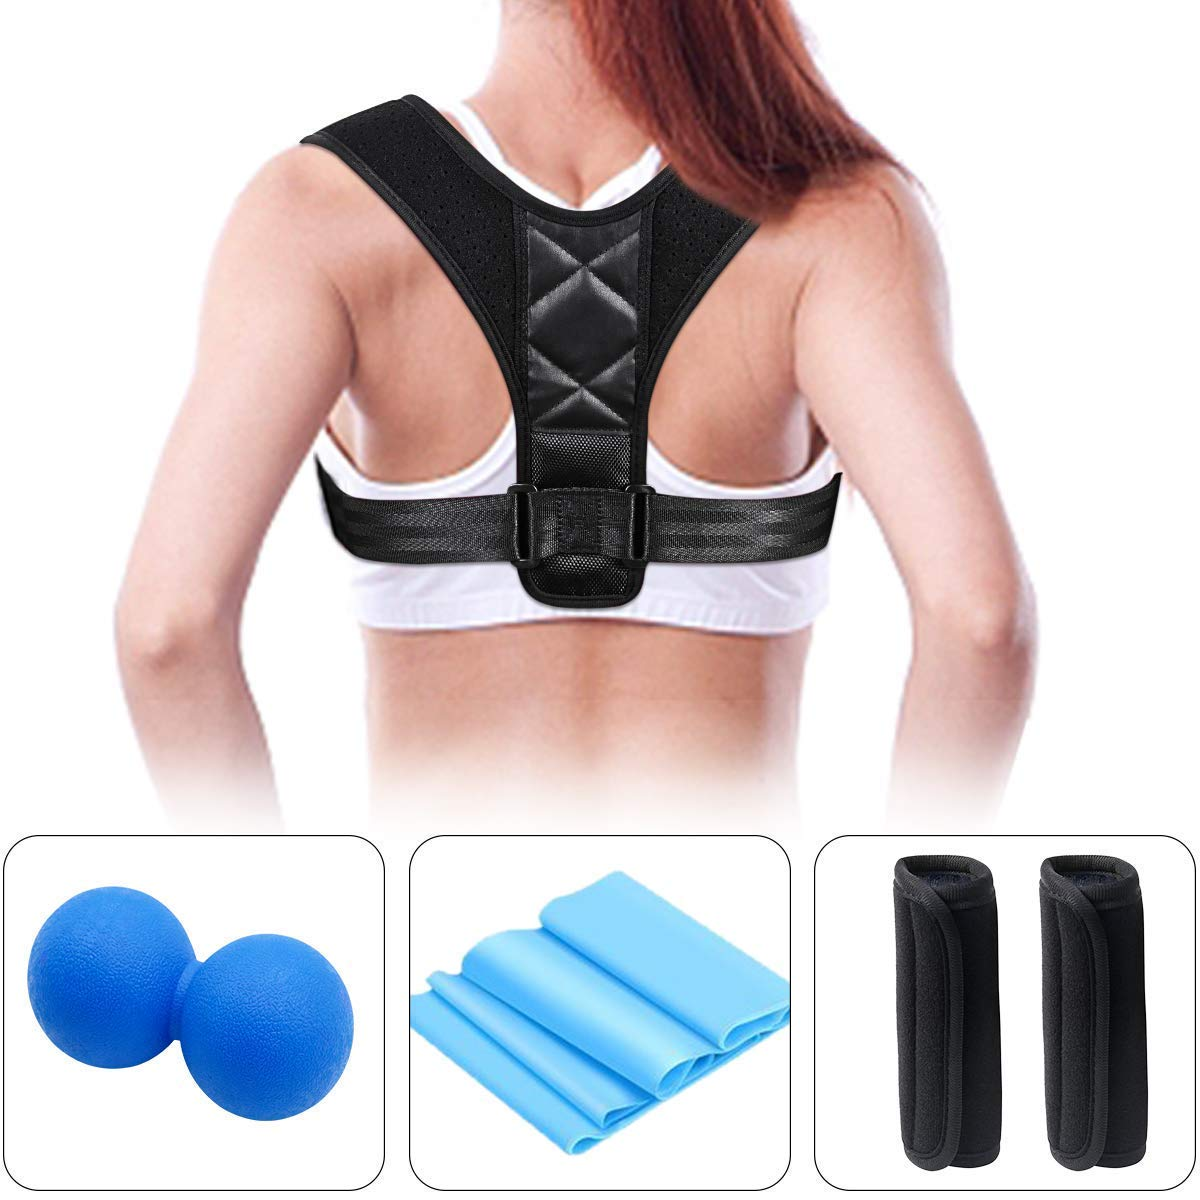 INKERSCOOP Body Wellness Posture Corrector Women Men+Resistance Bands+Massage Lacrosse Balls +2 Soft Armpit Pads to Improve Back Posture Neck Straightener Relieve Myofascial Exercise Bands